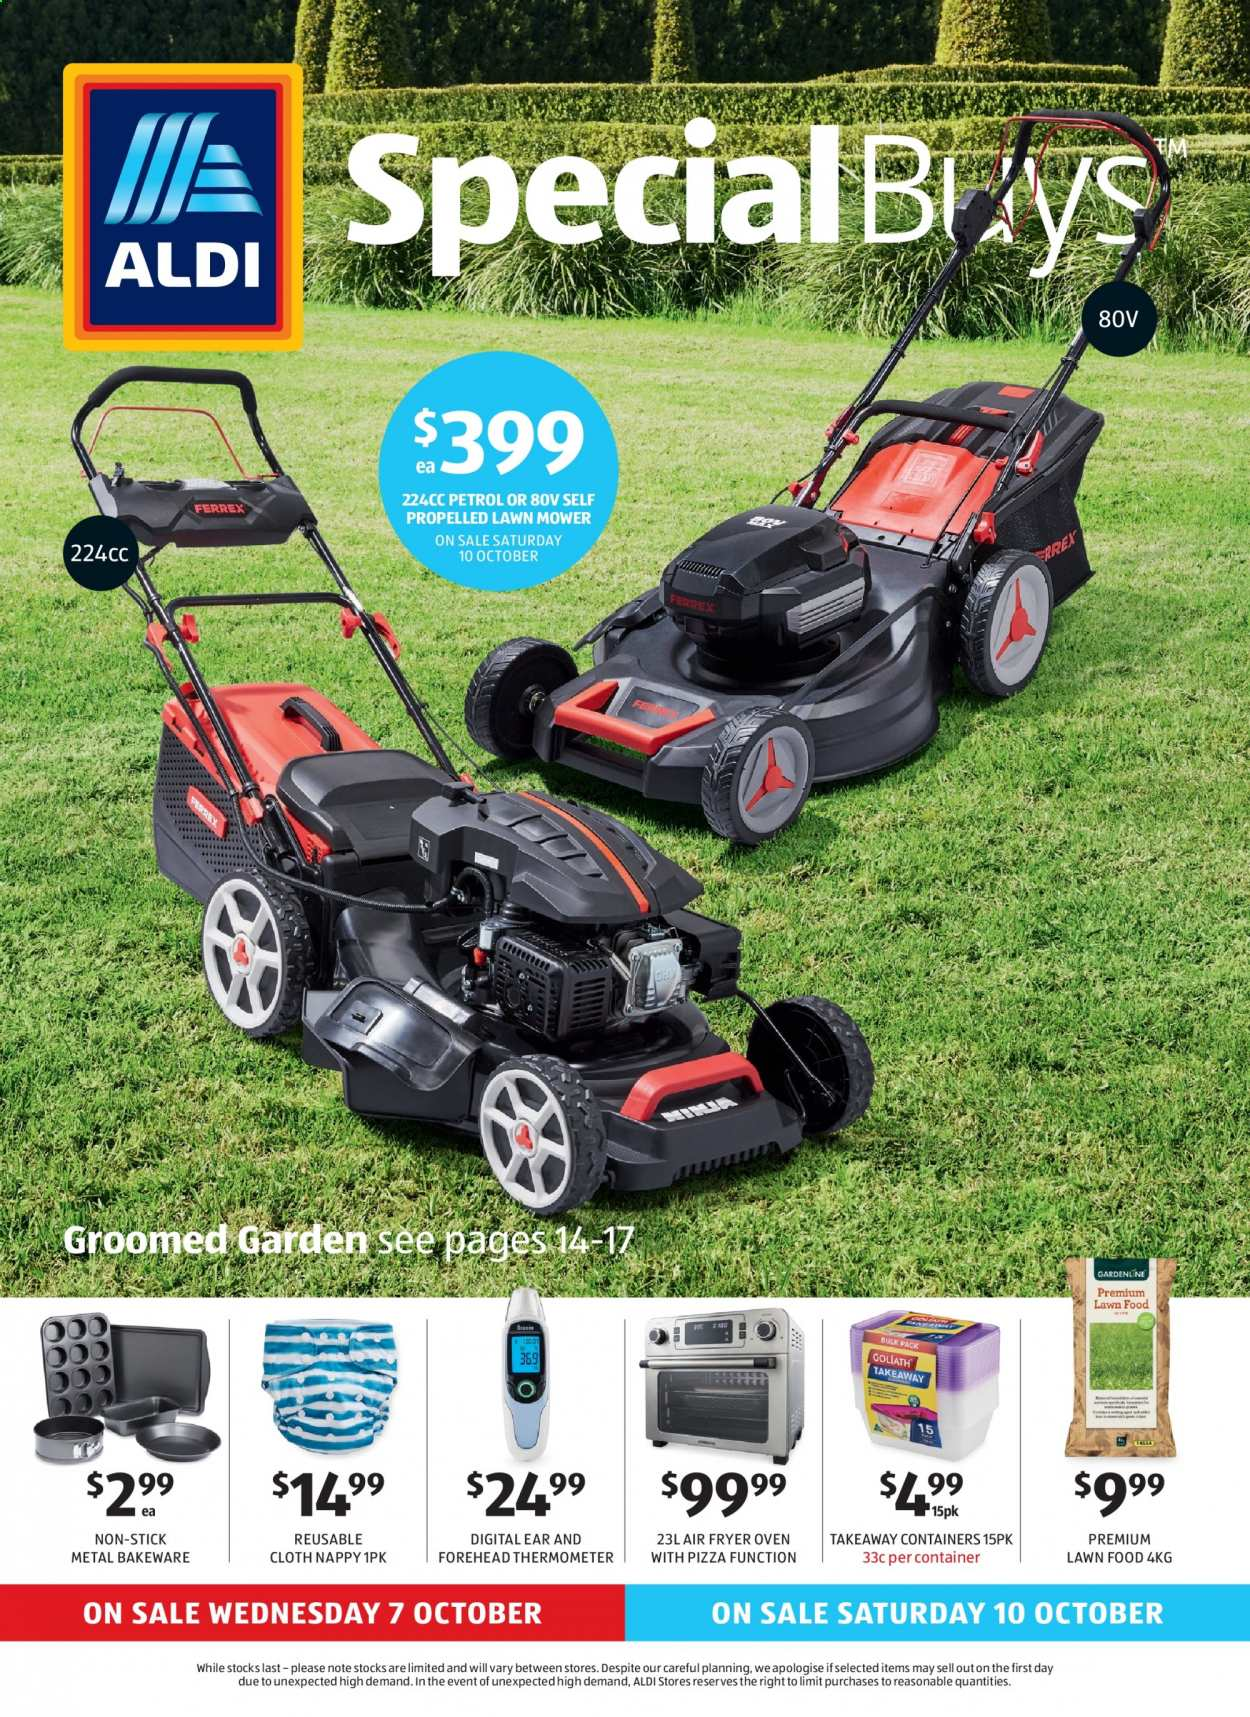 ALDI Catalogue - 7.10.2020 - 13.10.2020 - Sales products - container, fryer, thermometer, pizza, oven, air fryer. Page 1.